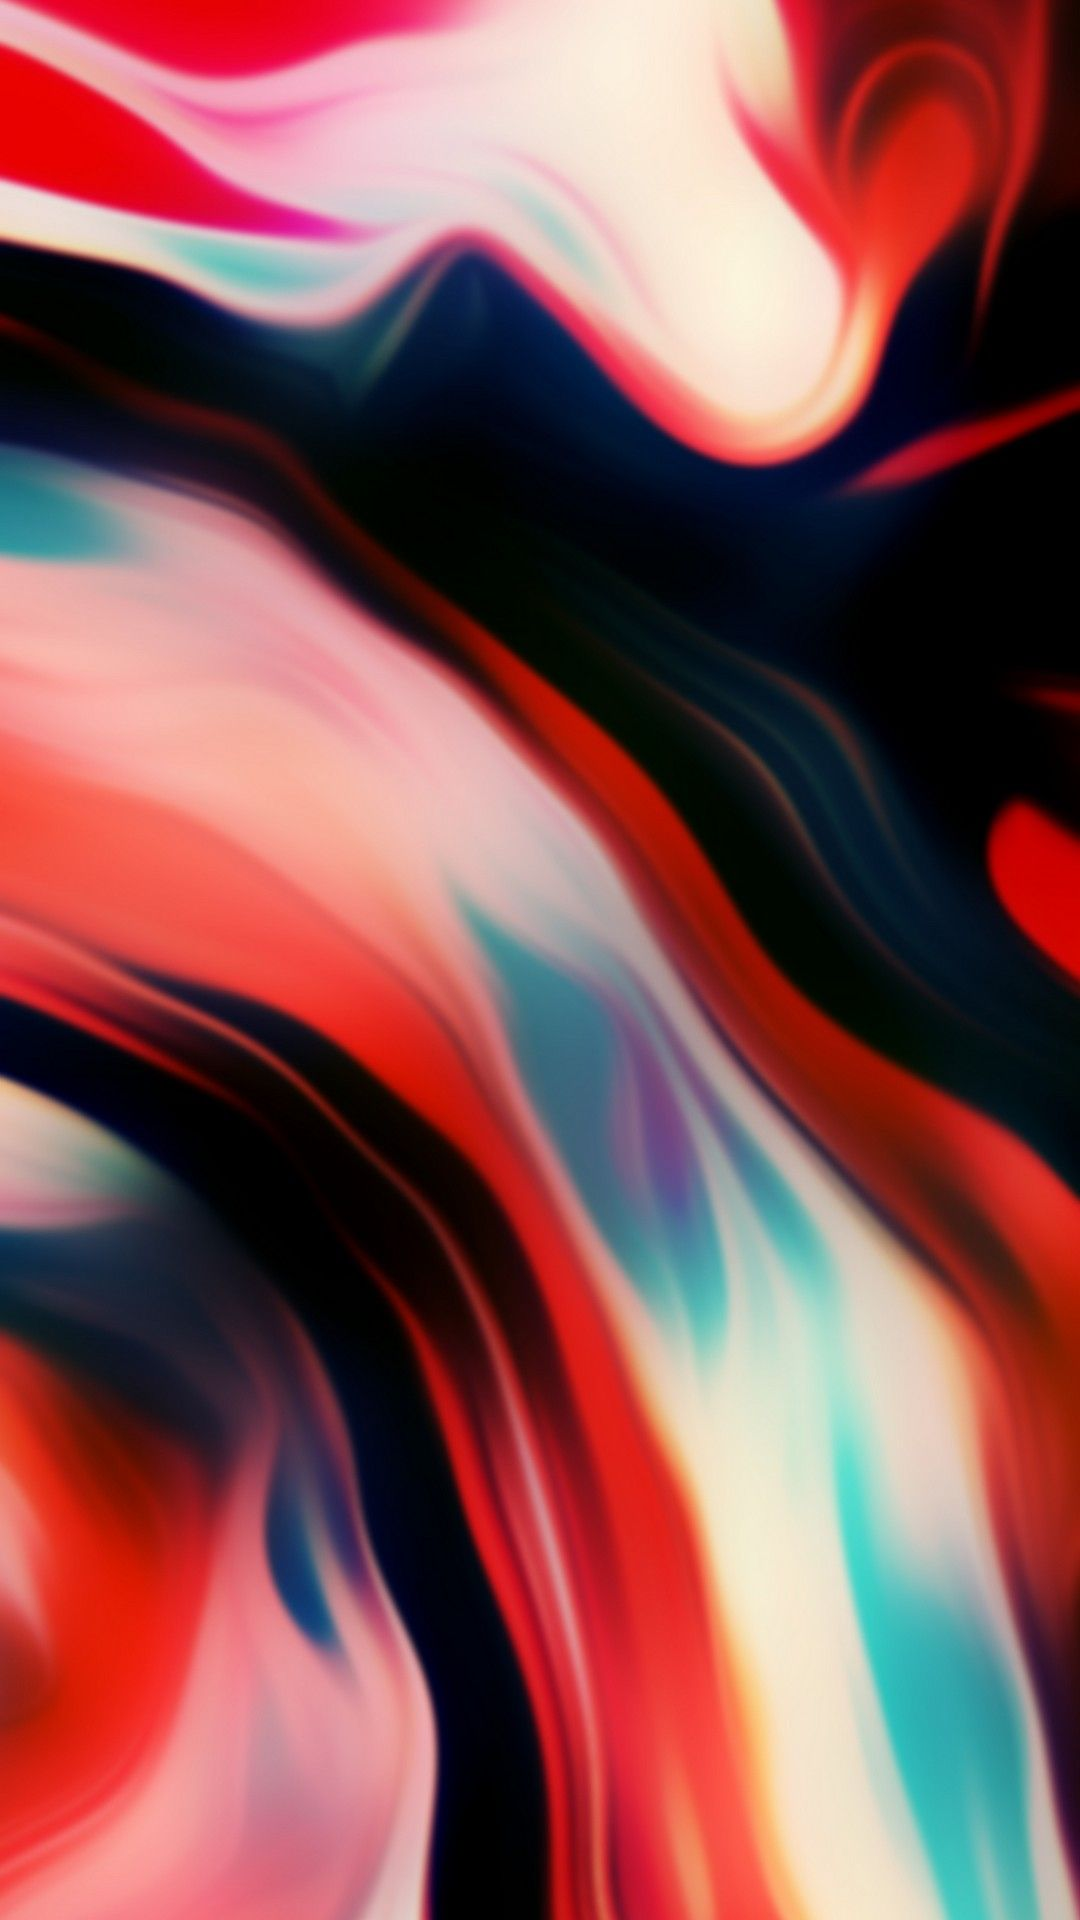 Fluid Iphone 8 Wallpaper Hd Iphone Fondos De Pantalla Fondos De